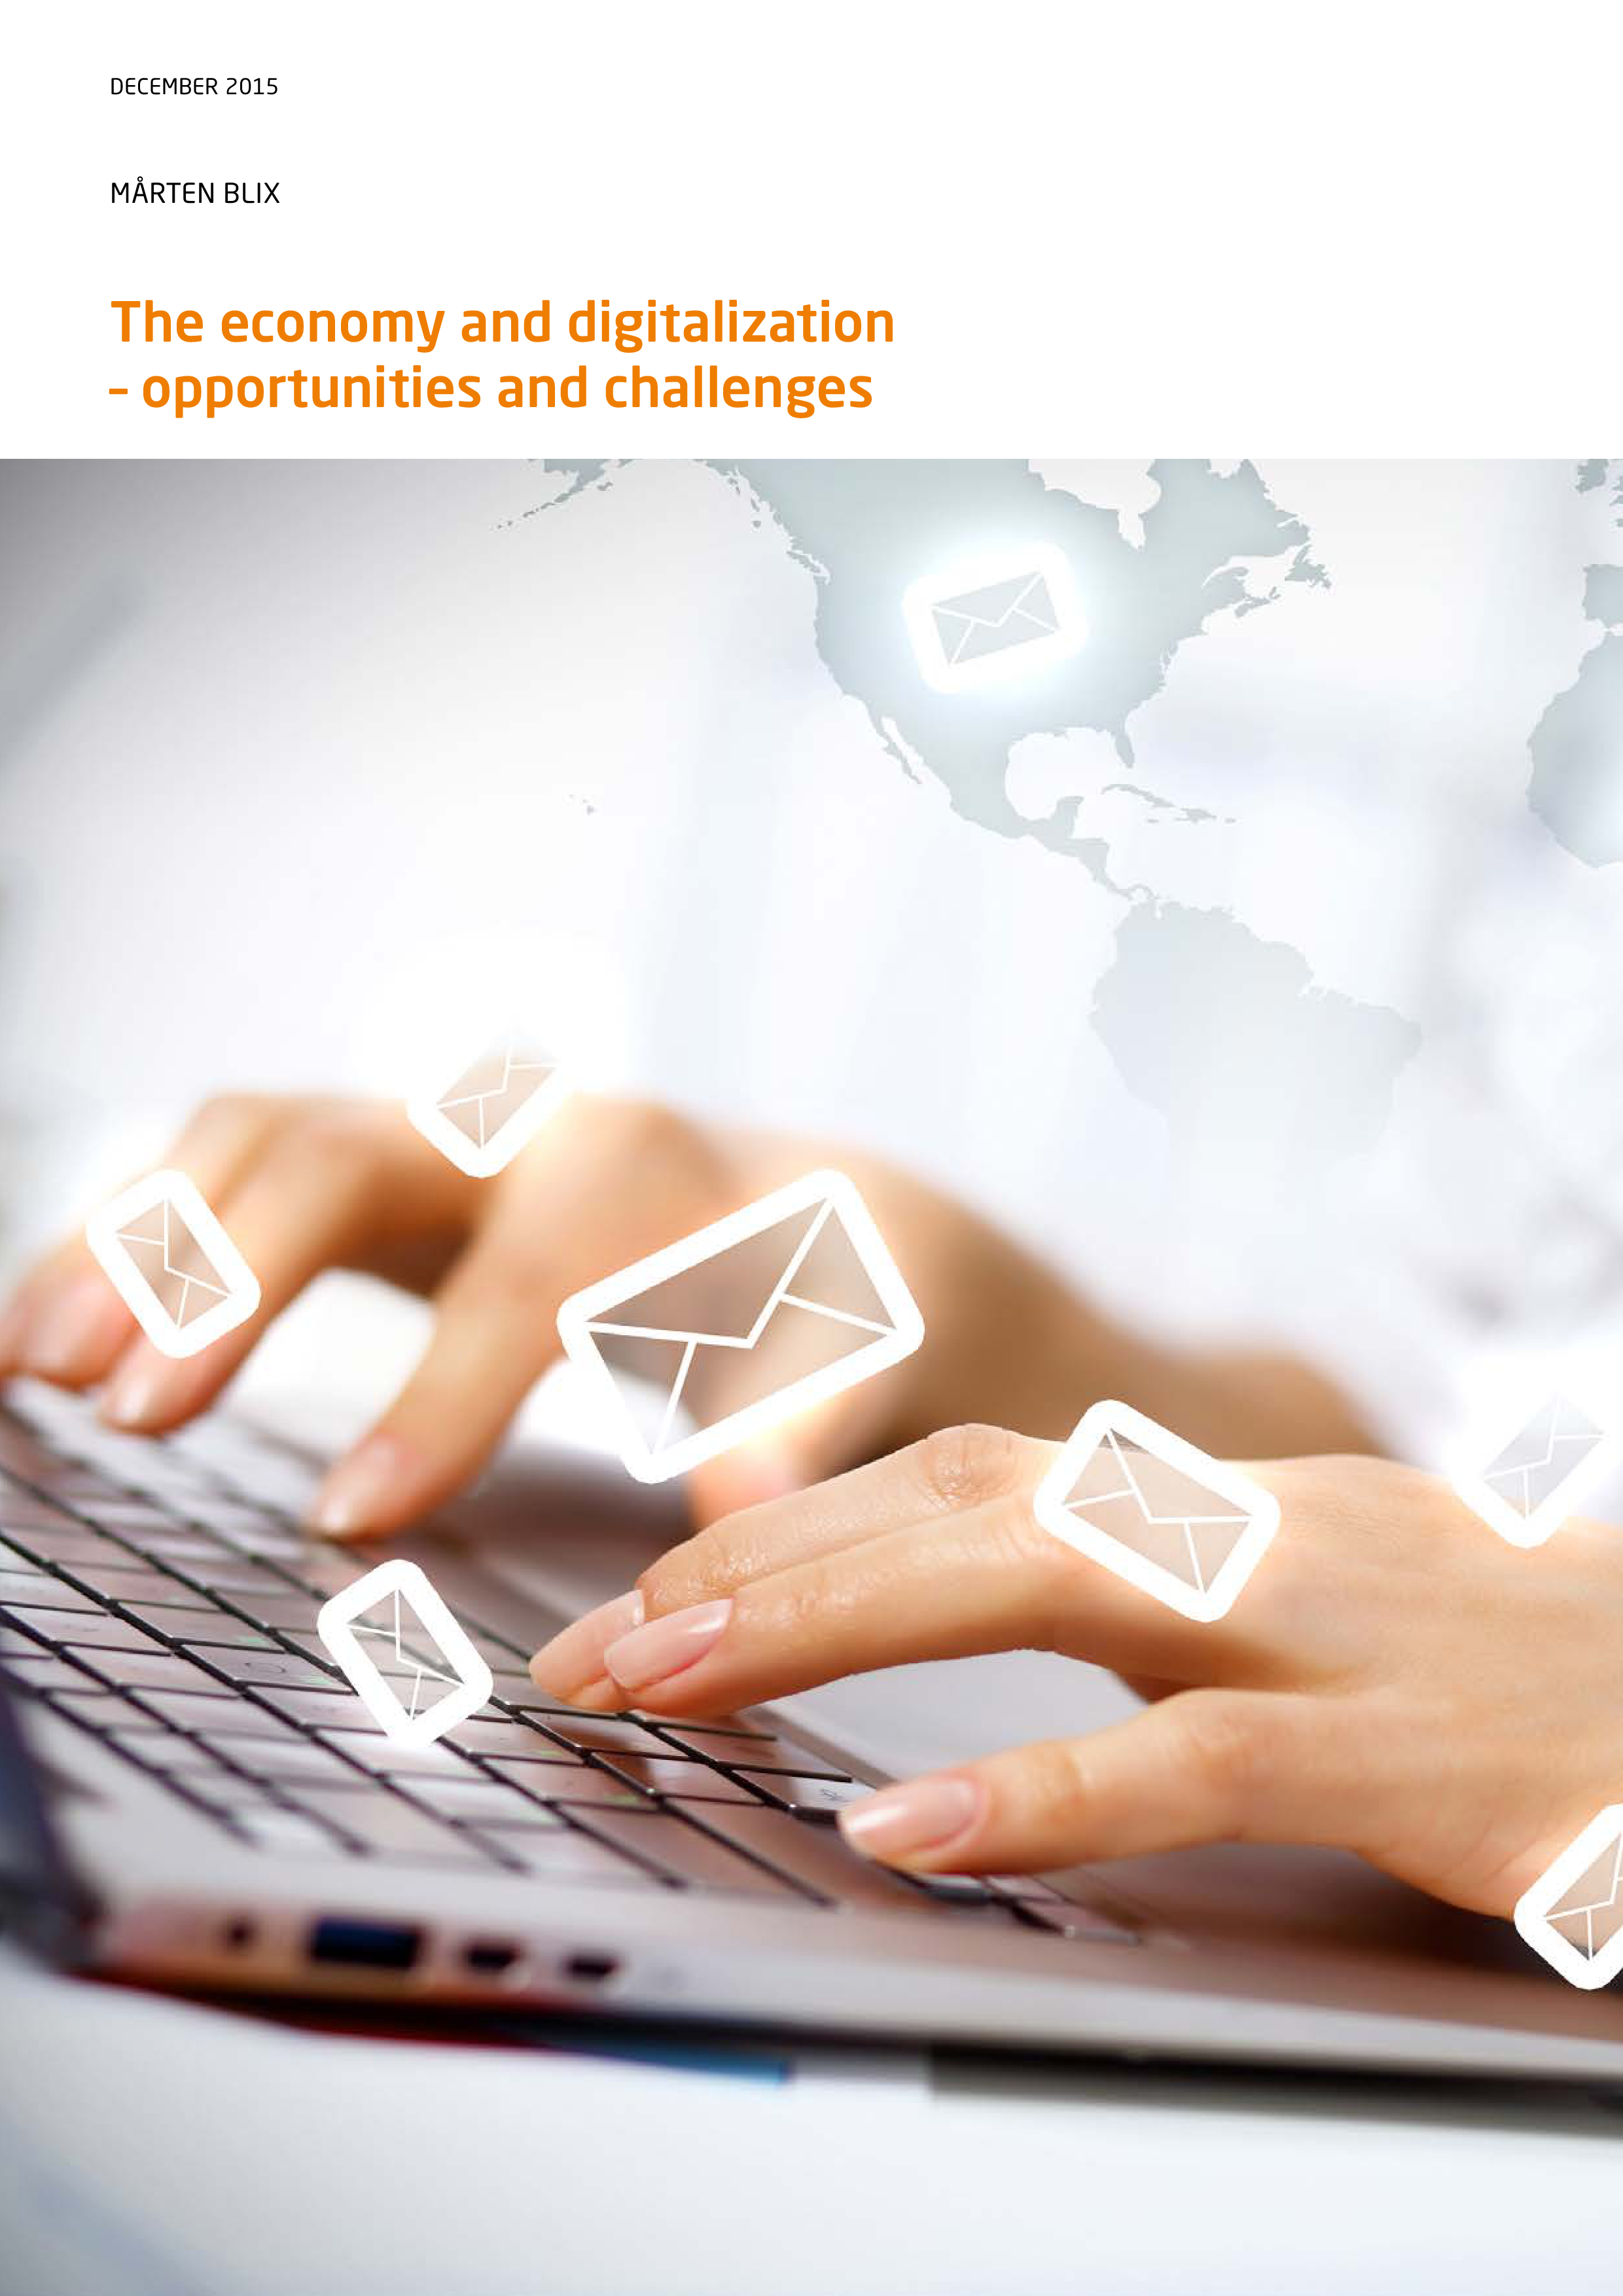 The economy and digitalization – opportunities and challenges